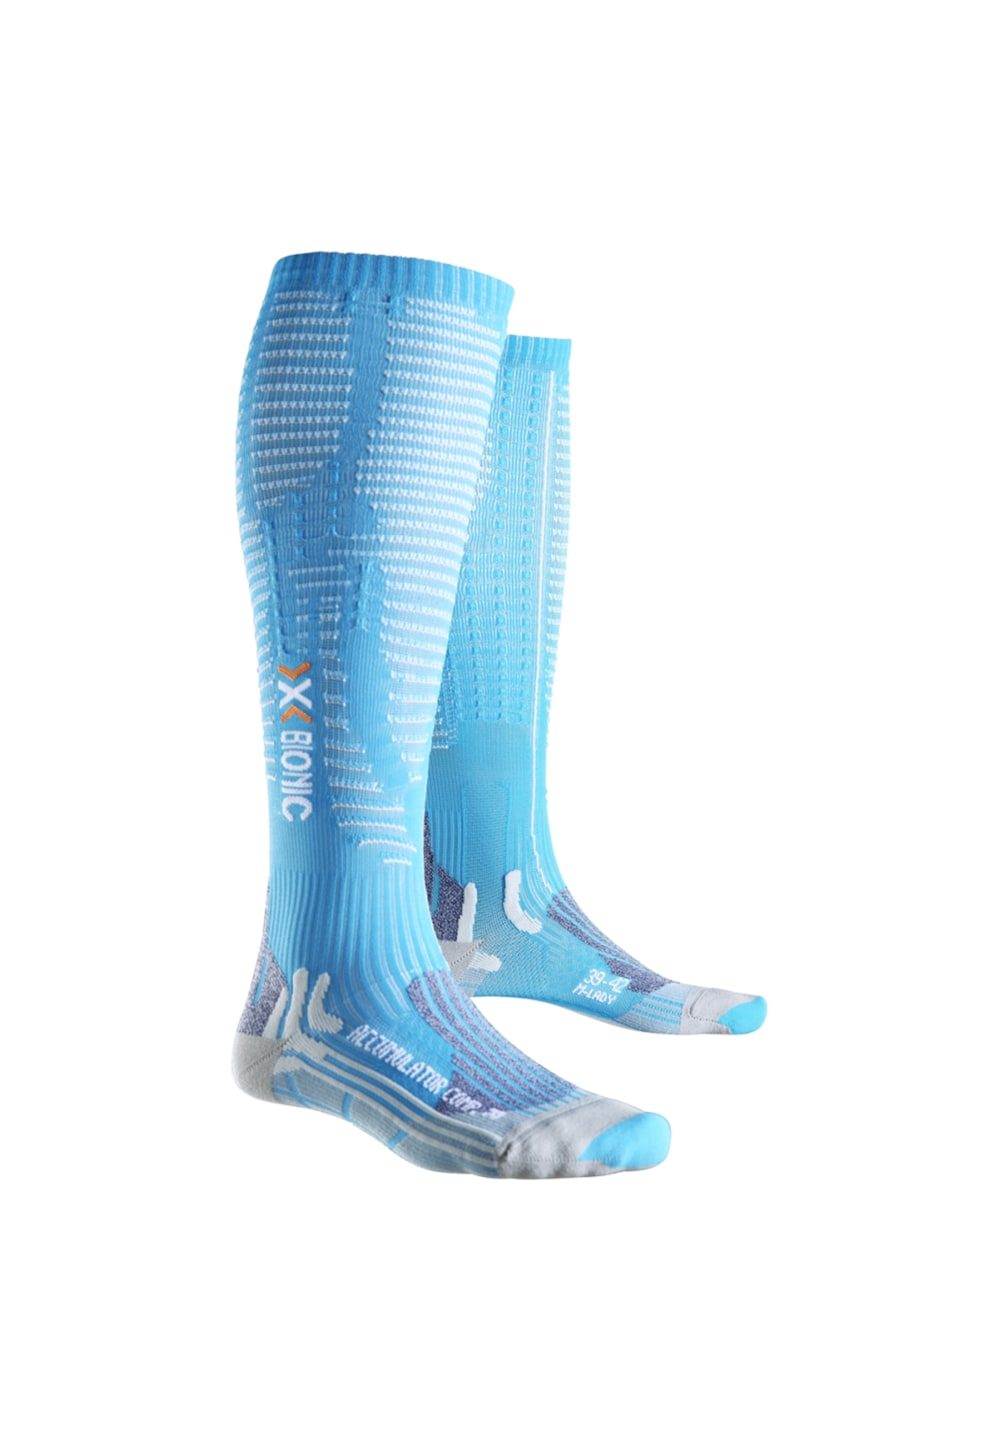 X-Bionic Accumulator Competition - Laufsocken für Damen - Blau, Gr. 39-42 S